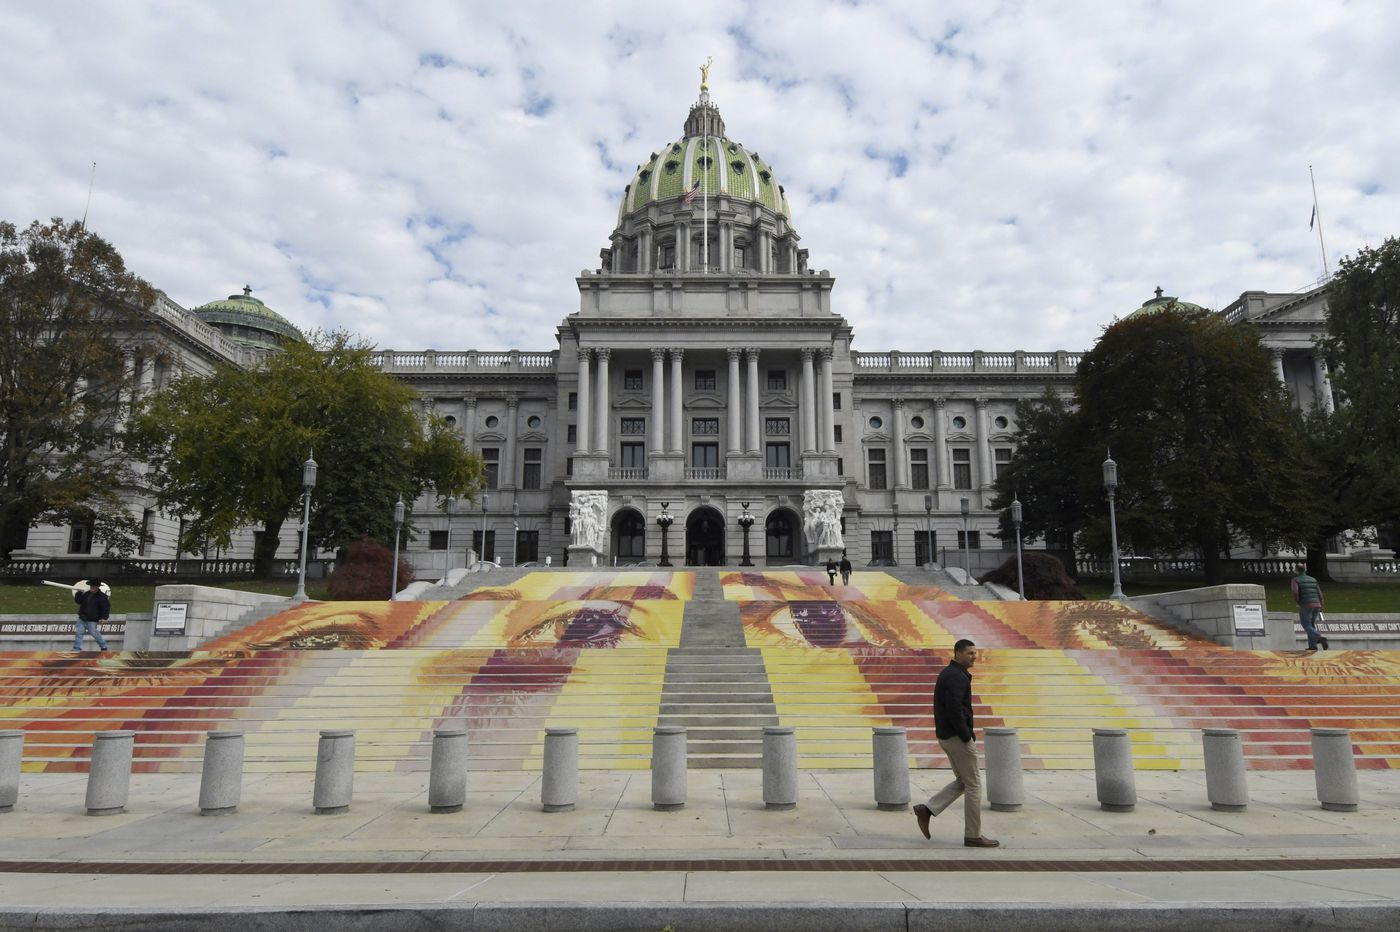 No more excuses. Fix Pa. pension funds | Editorial